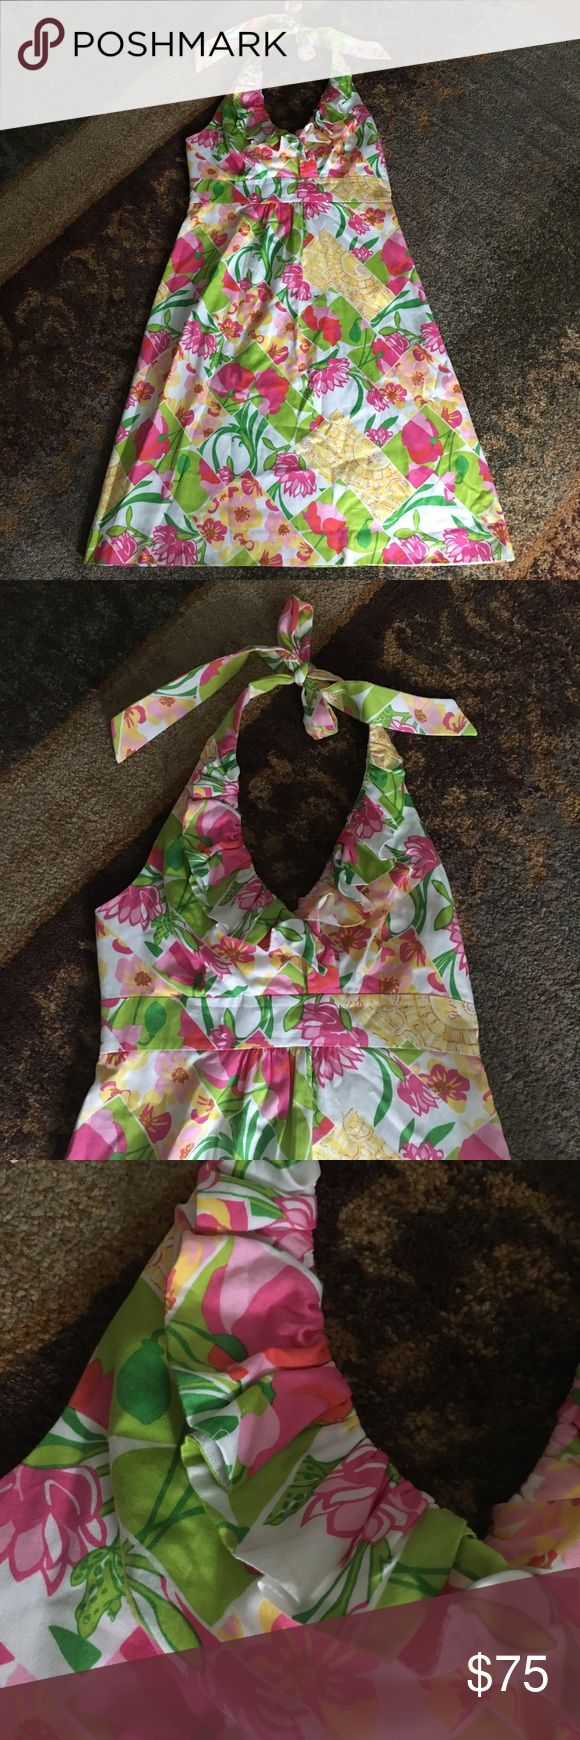 Lilly Pulitzer floral print halter - bright colors Lilly Pulitzer floral print halter - bright colors. Great condition Lilly Pulitzer Dresses Midi